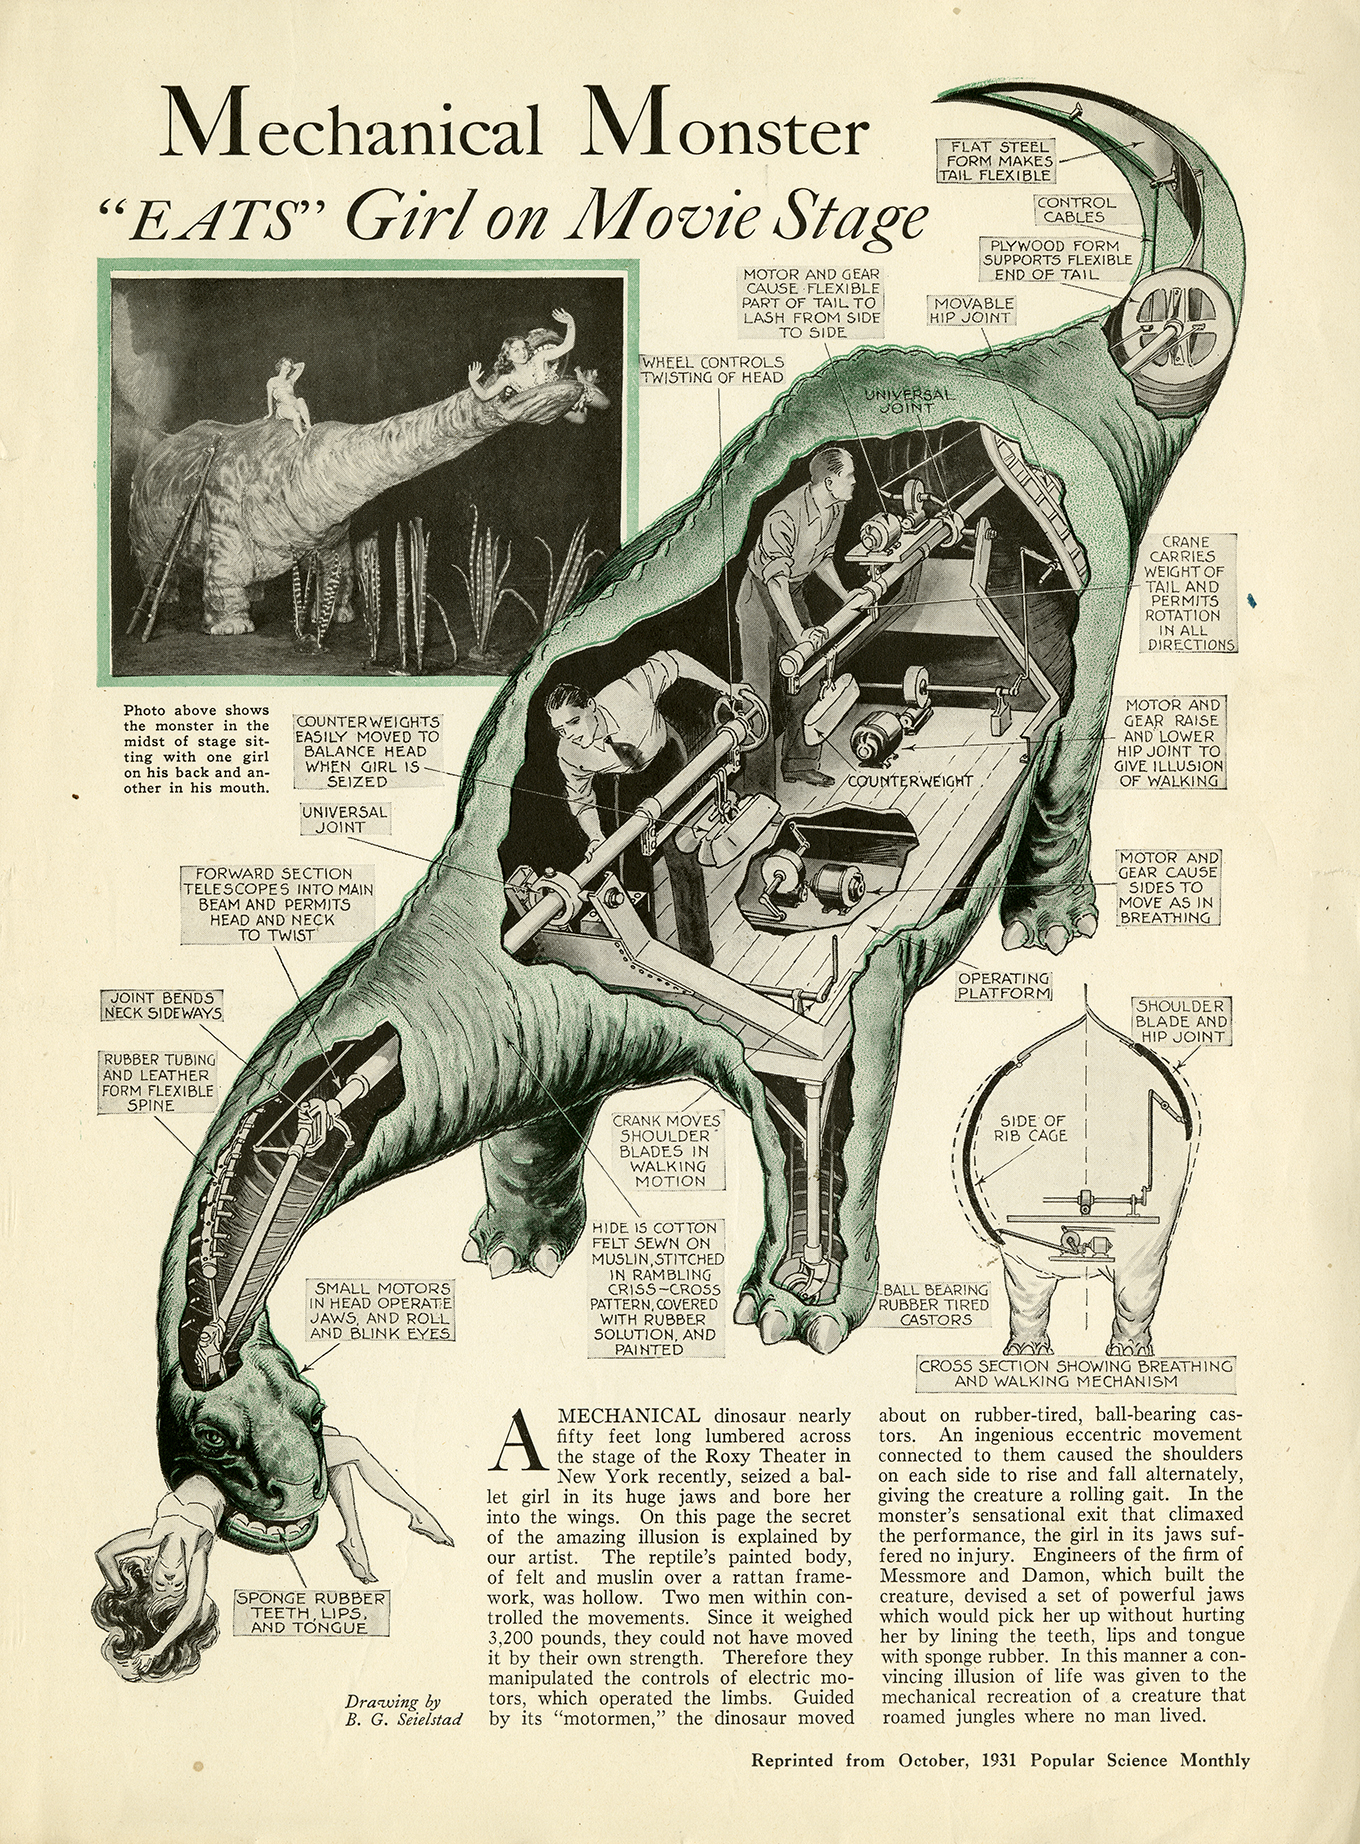 1931 Popular Science Monthly article with the title Mechanical Monster Eats Girl on Movie Stage